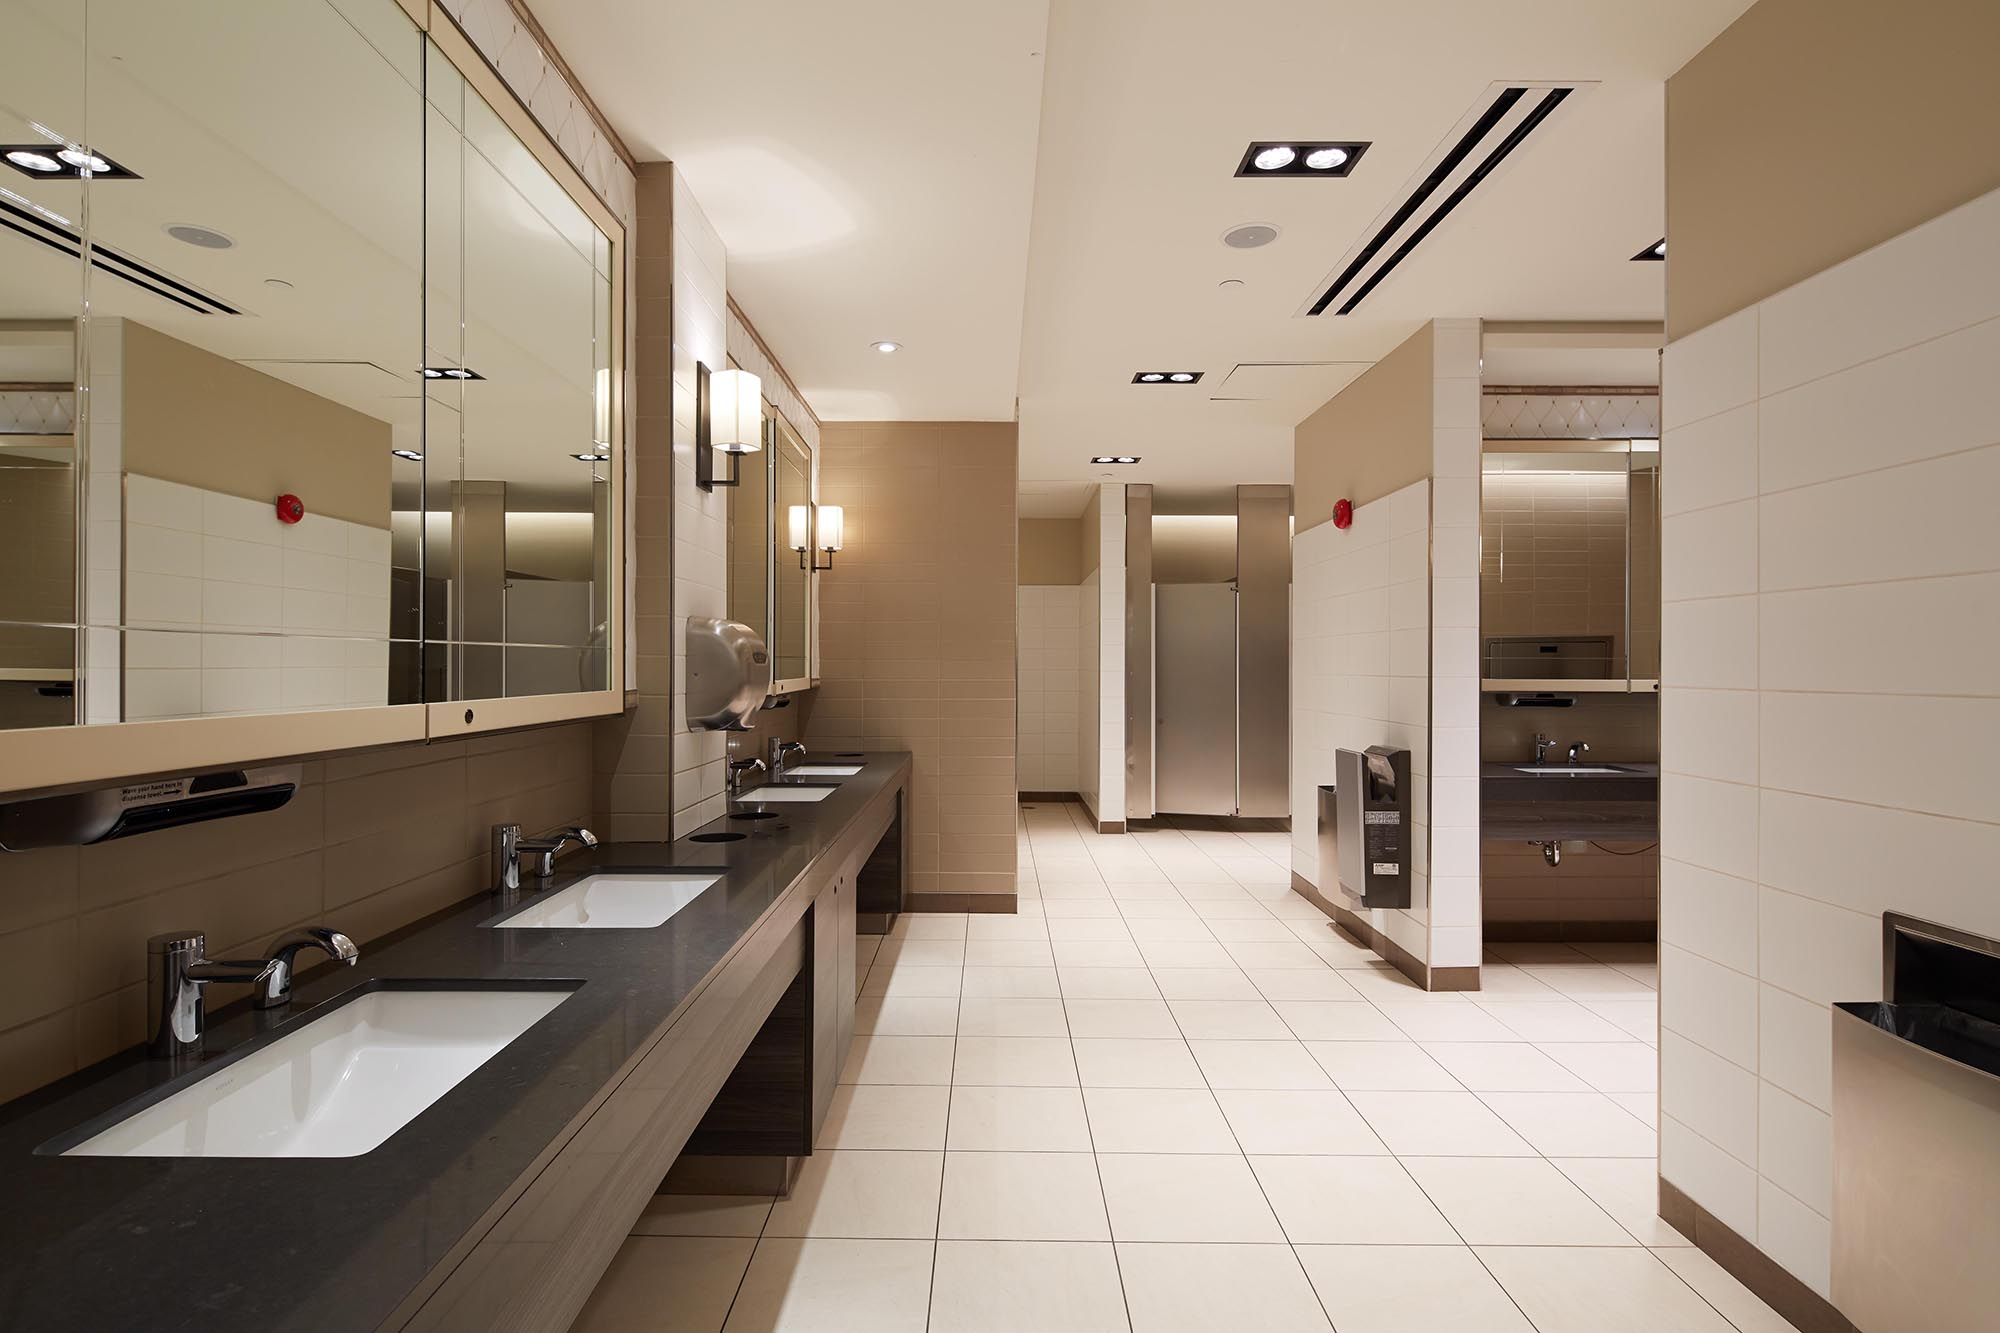 Town centre mall washrooms